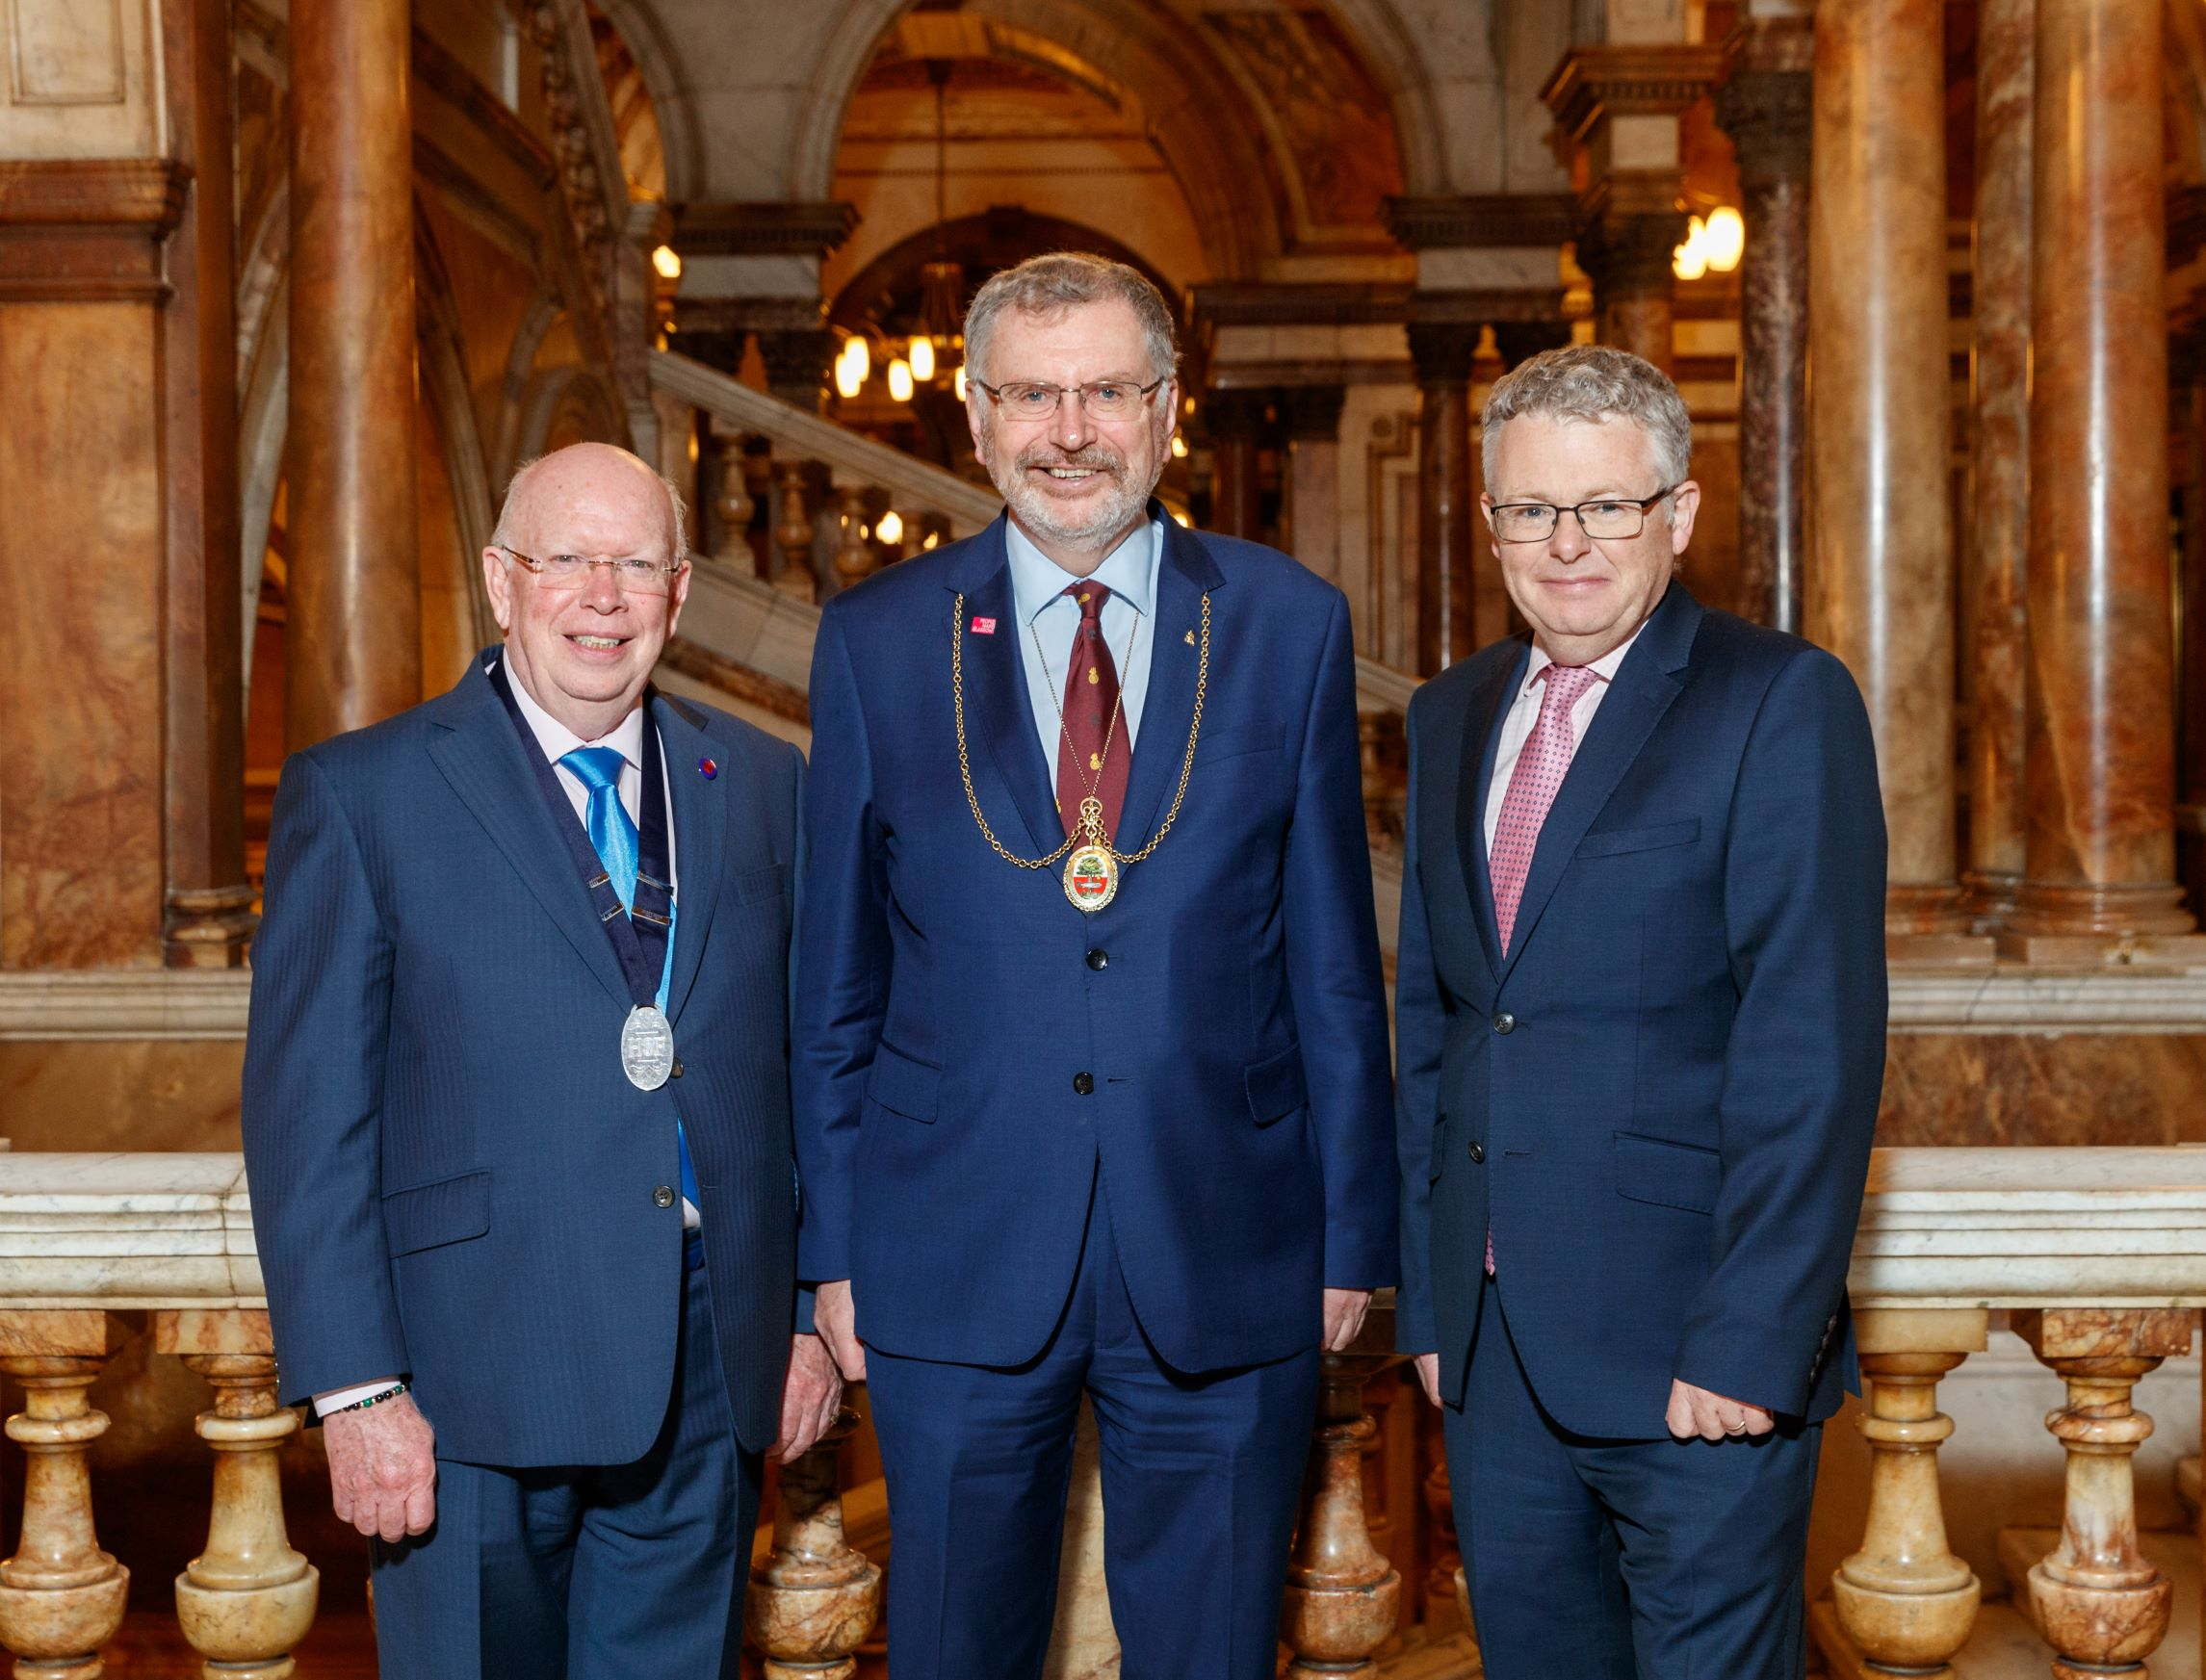 John Greenwood, The Hospital Saturday Fund Chairman with Mr Ian Dickson, Lord Dean of Guild and Paul Jackson, The Hospital Saturday Fund Chief Executive